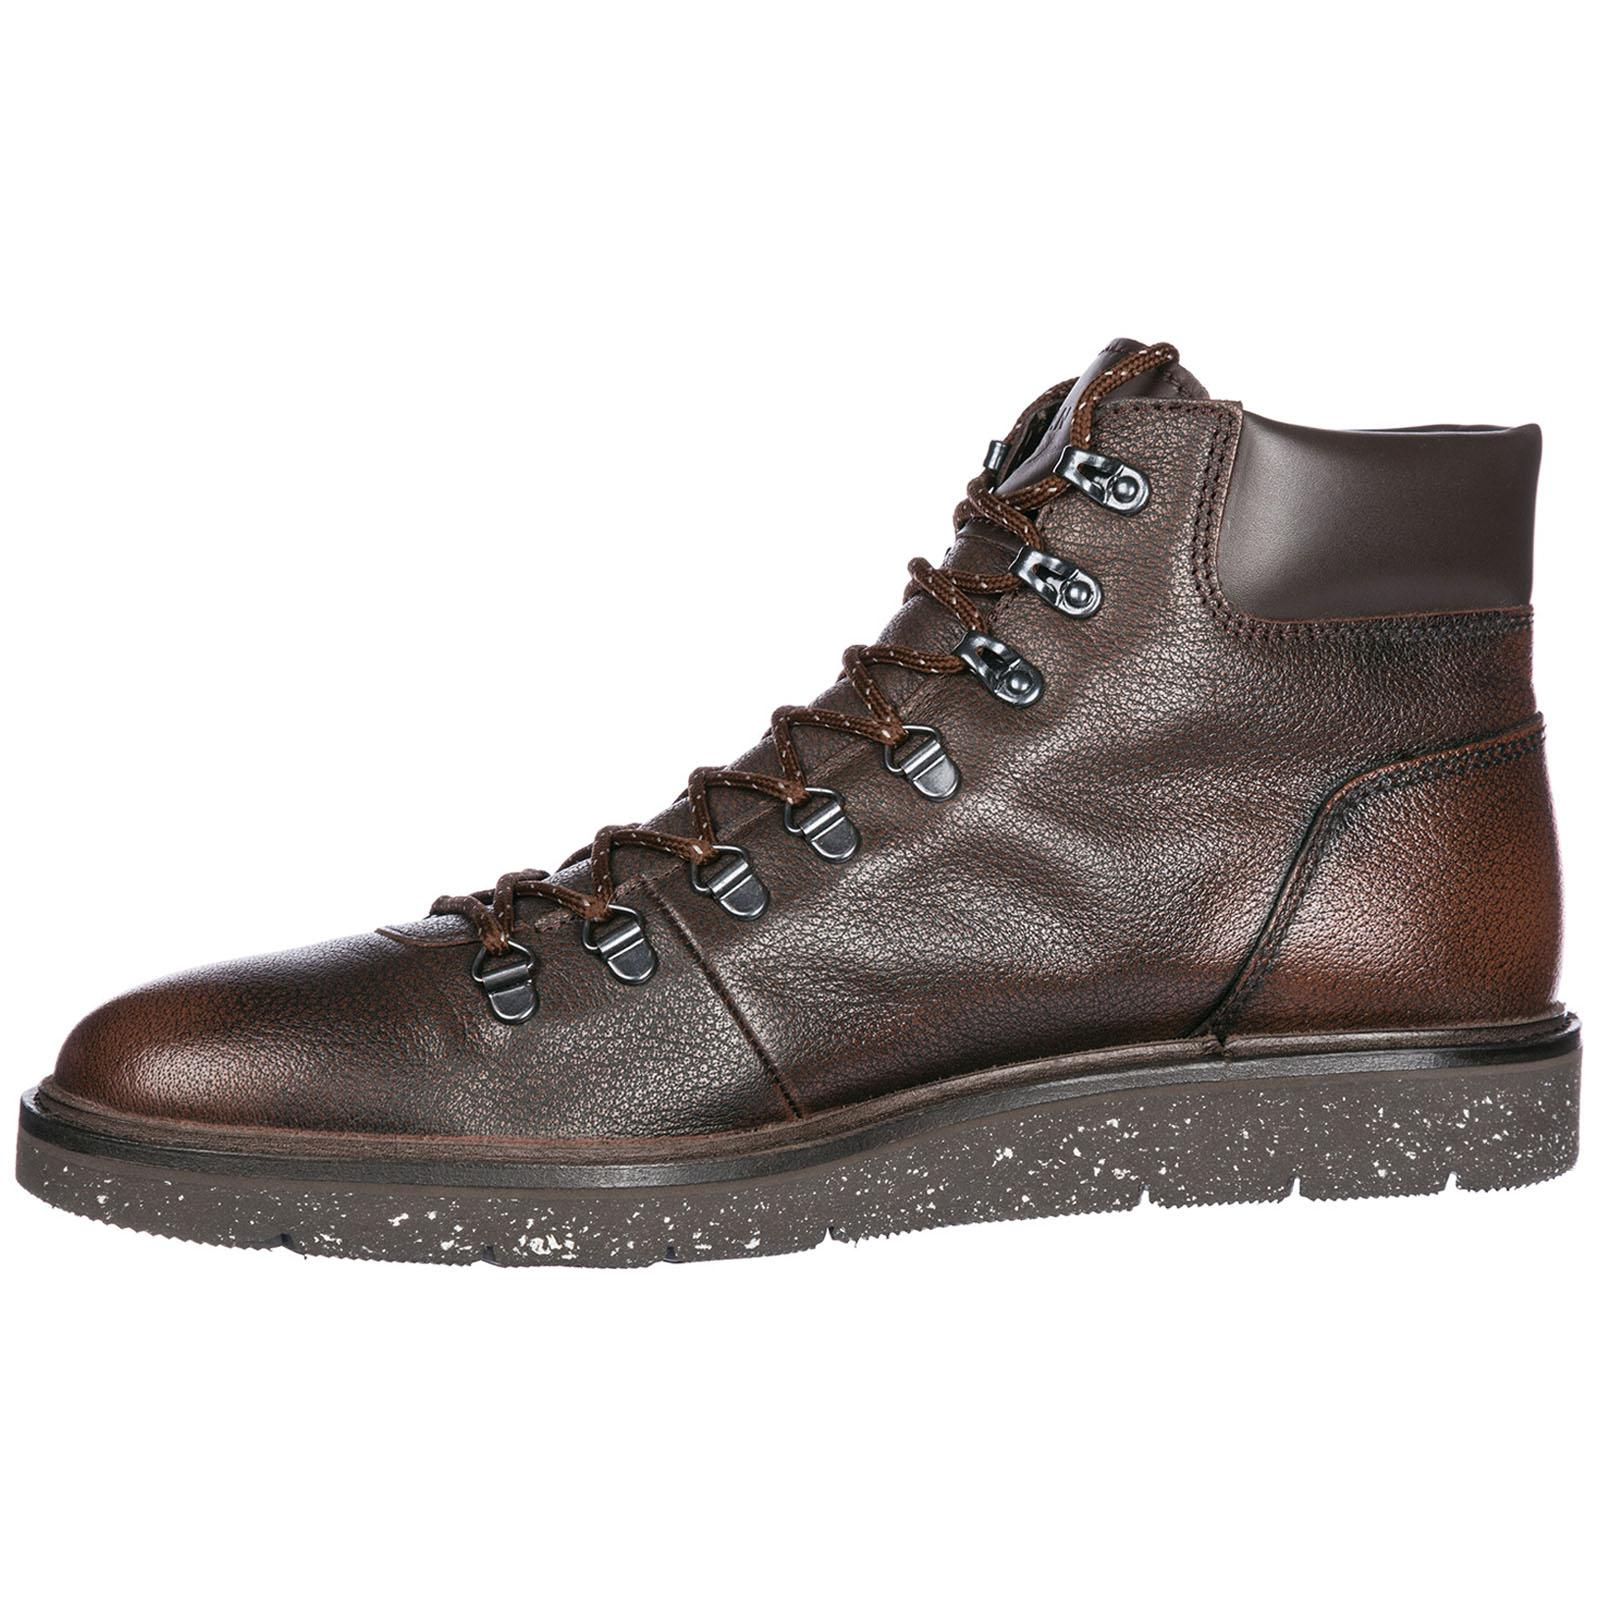 Hogan Genuine Leather Ankle Boots H334 Hiking in Brown for Men - Lyst